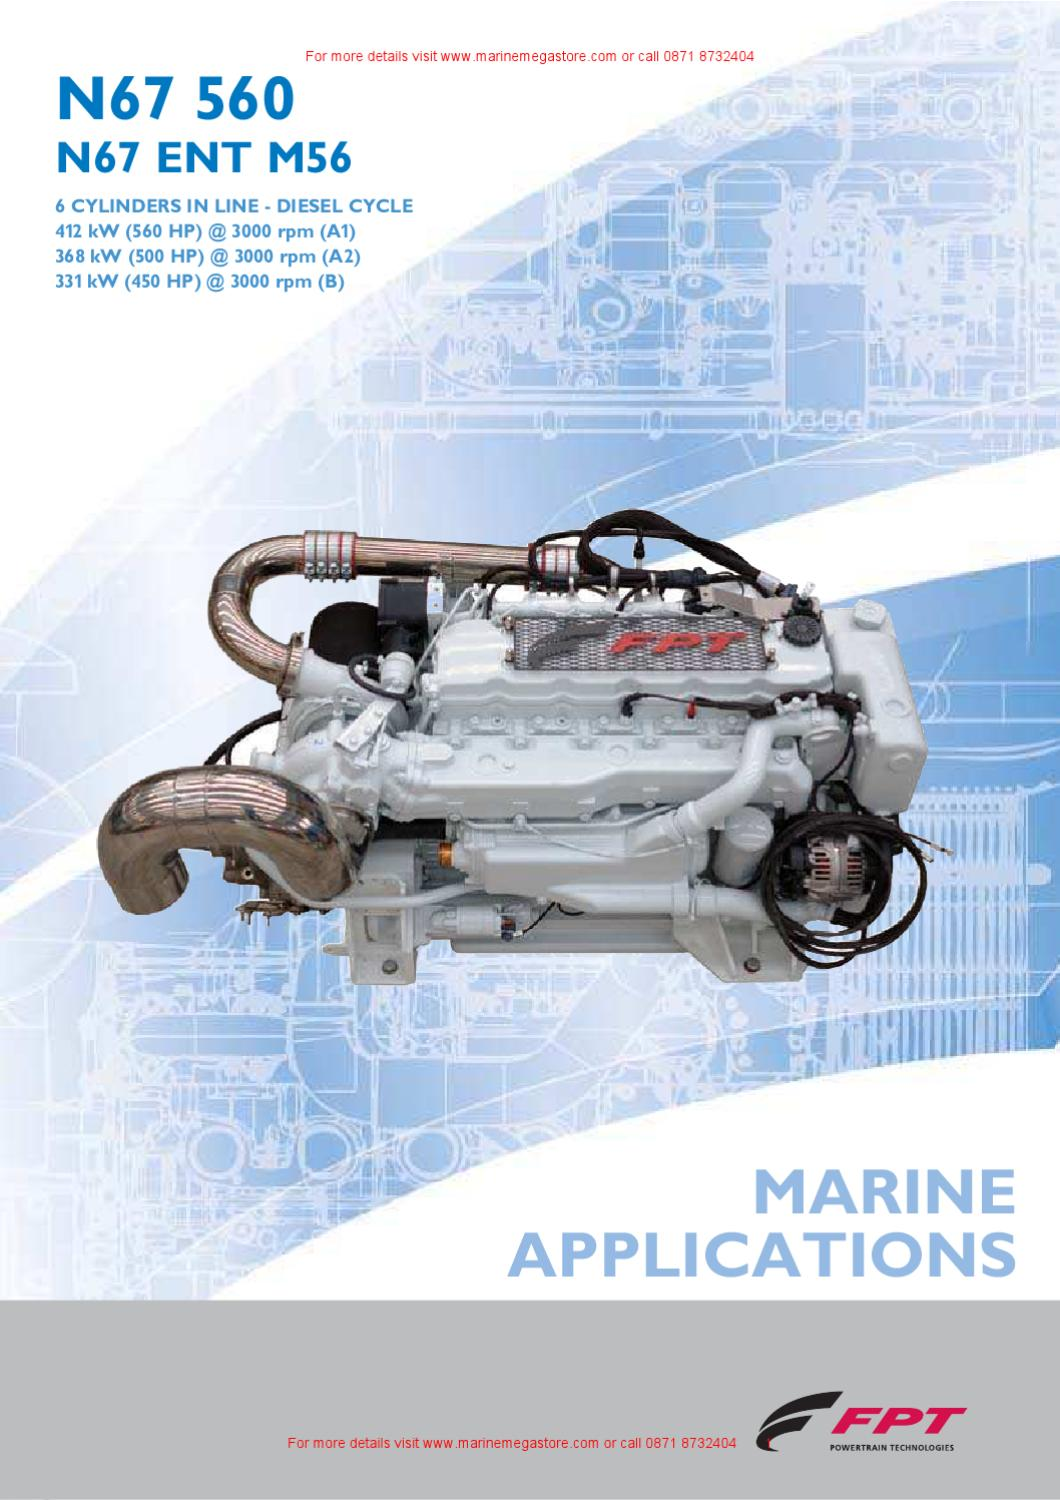 Fiat Powertrain Technologies Fpt N67 560 English By